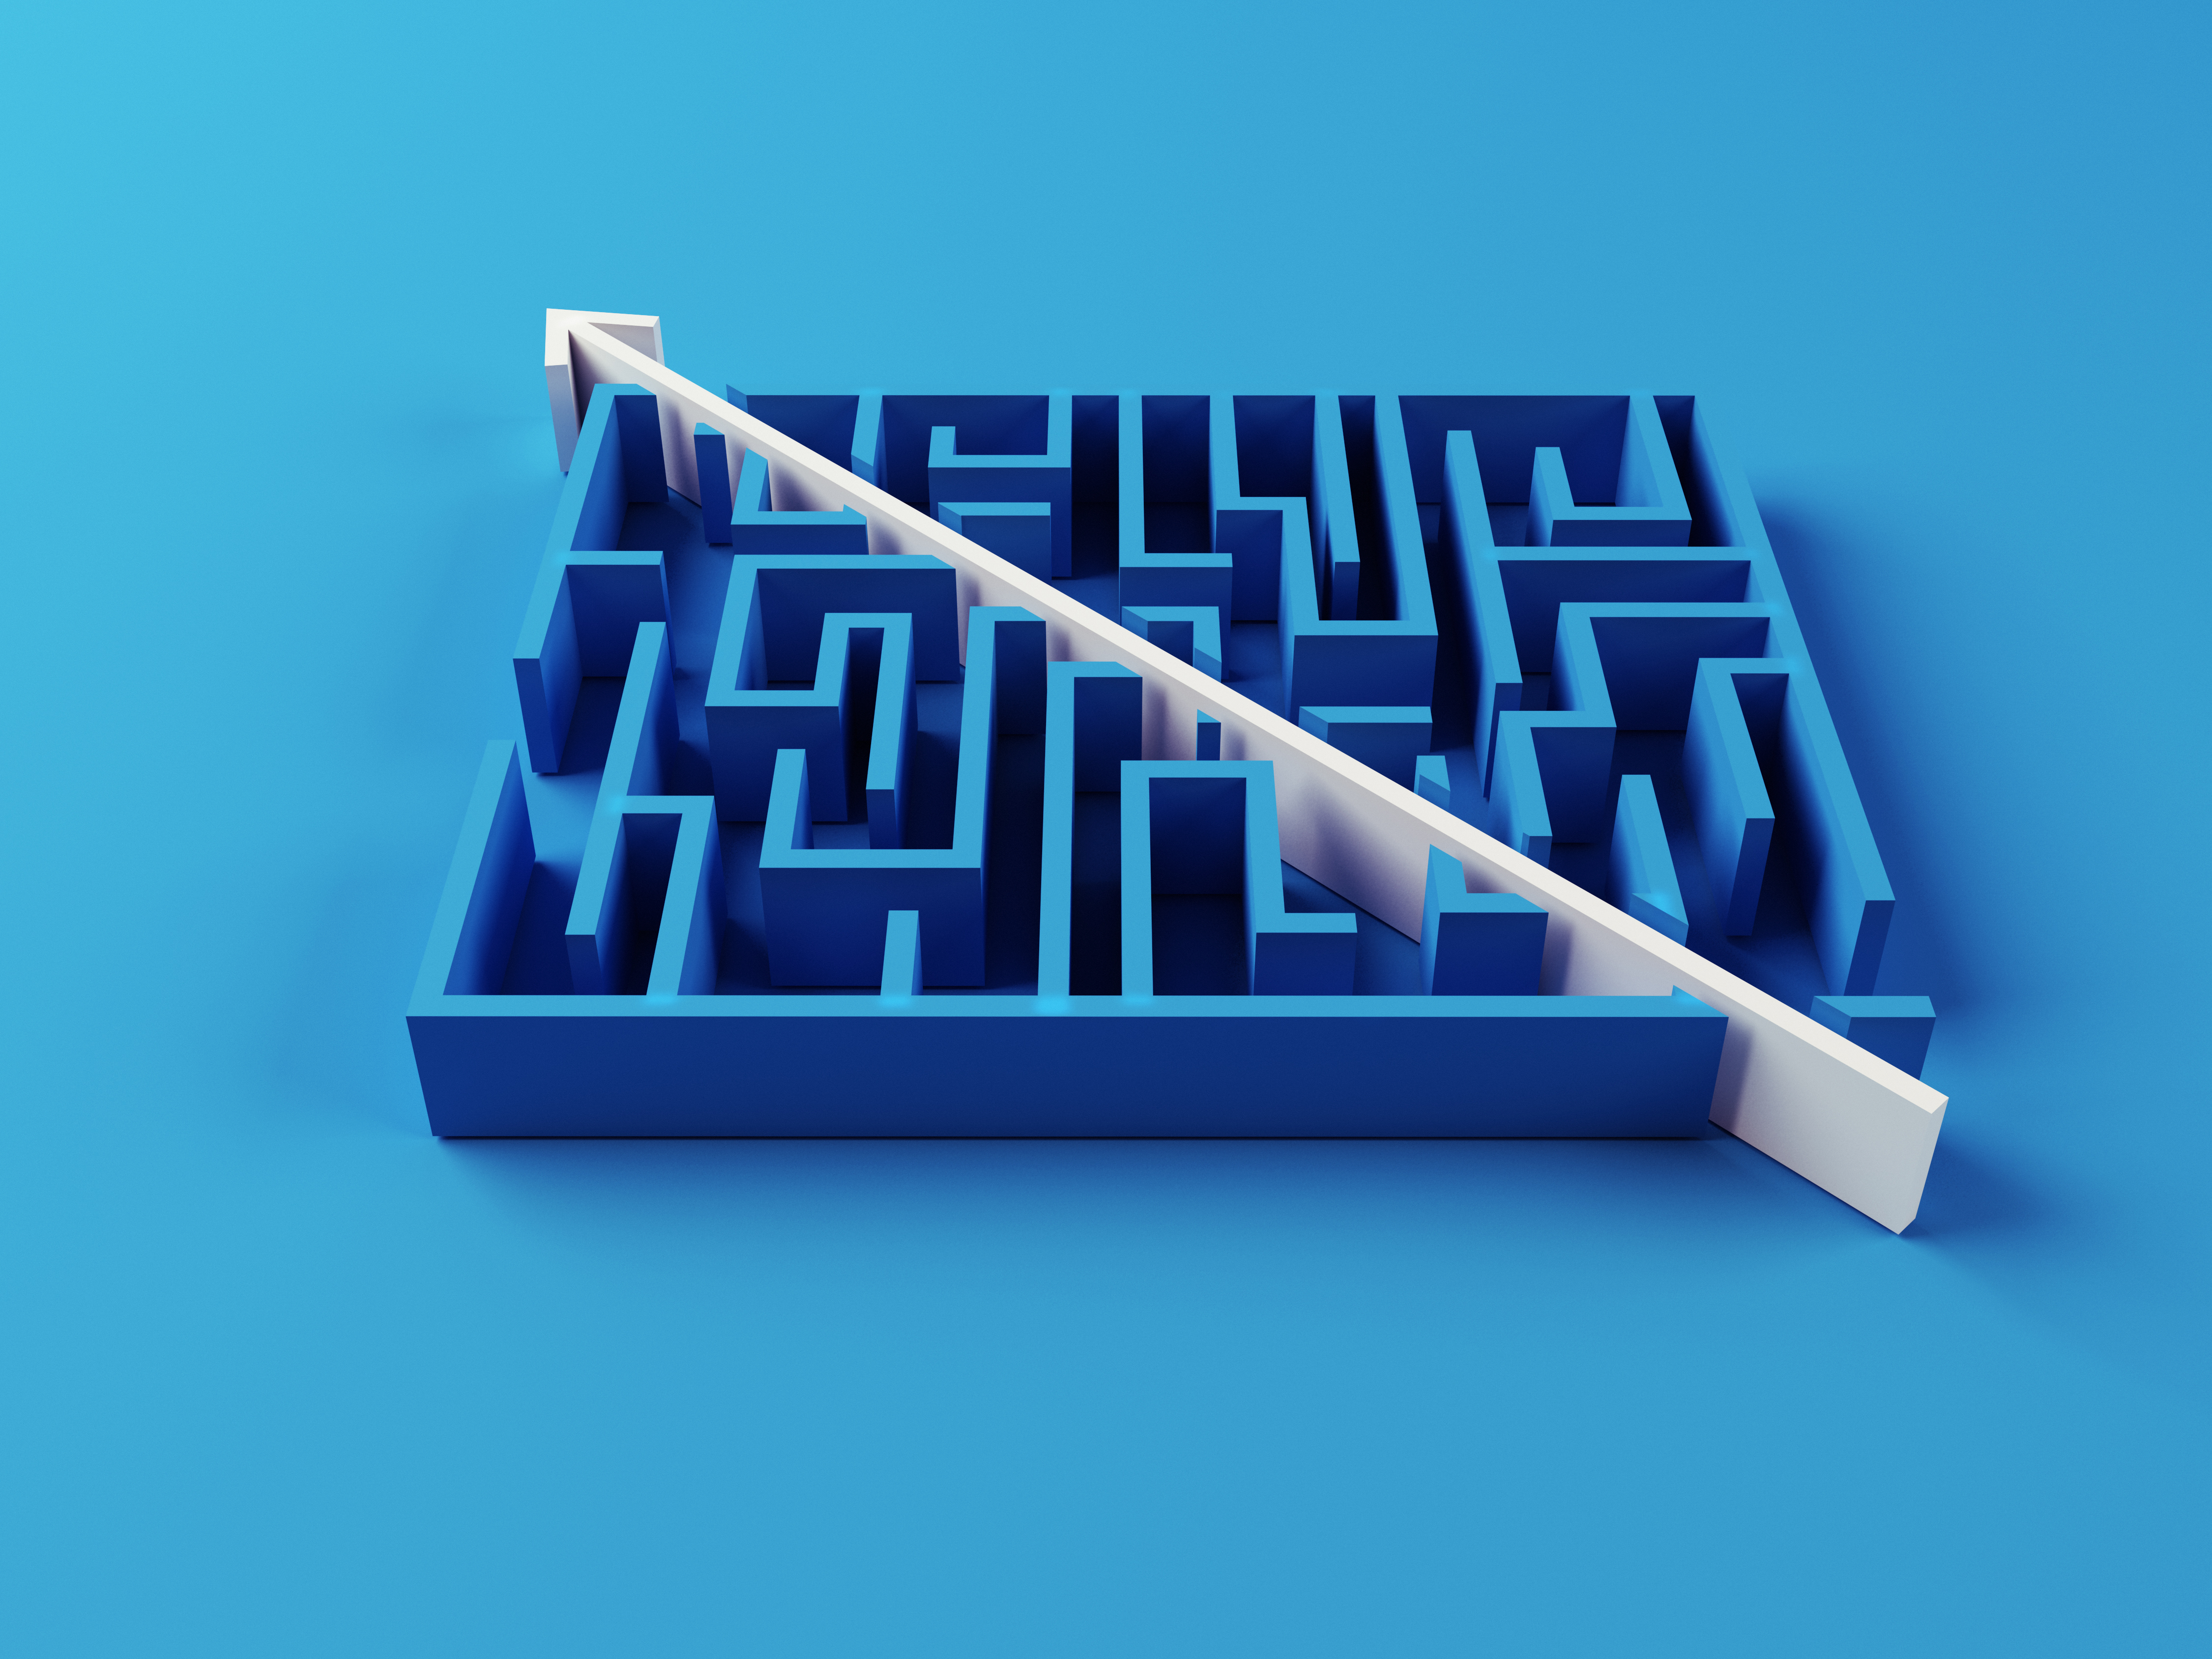 Solved Maze puzzle on blue background